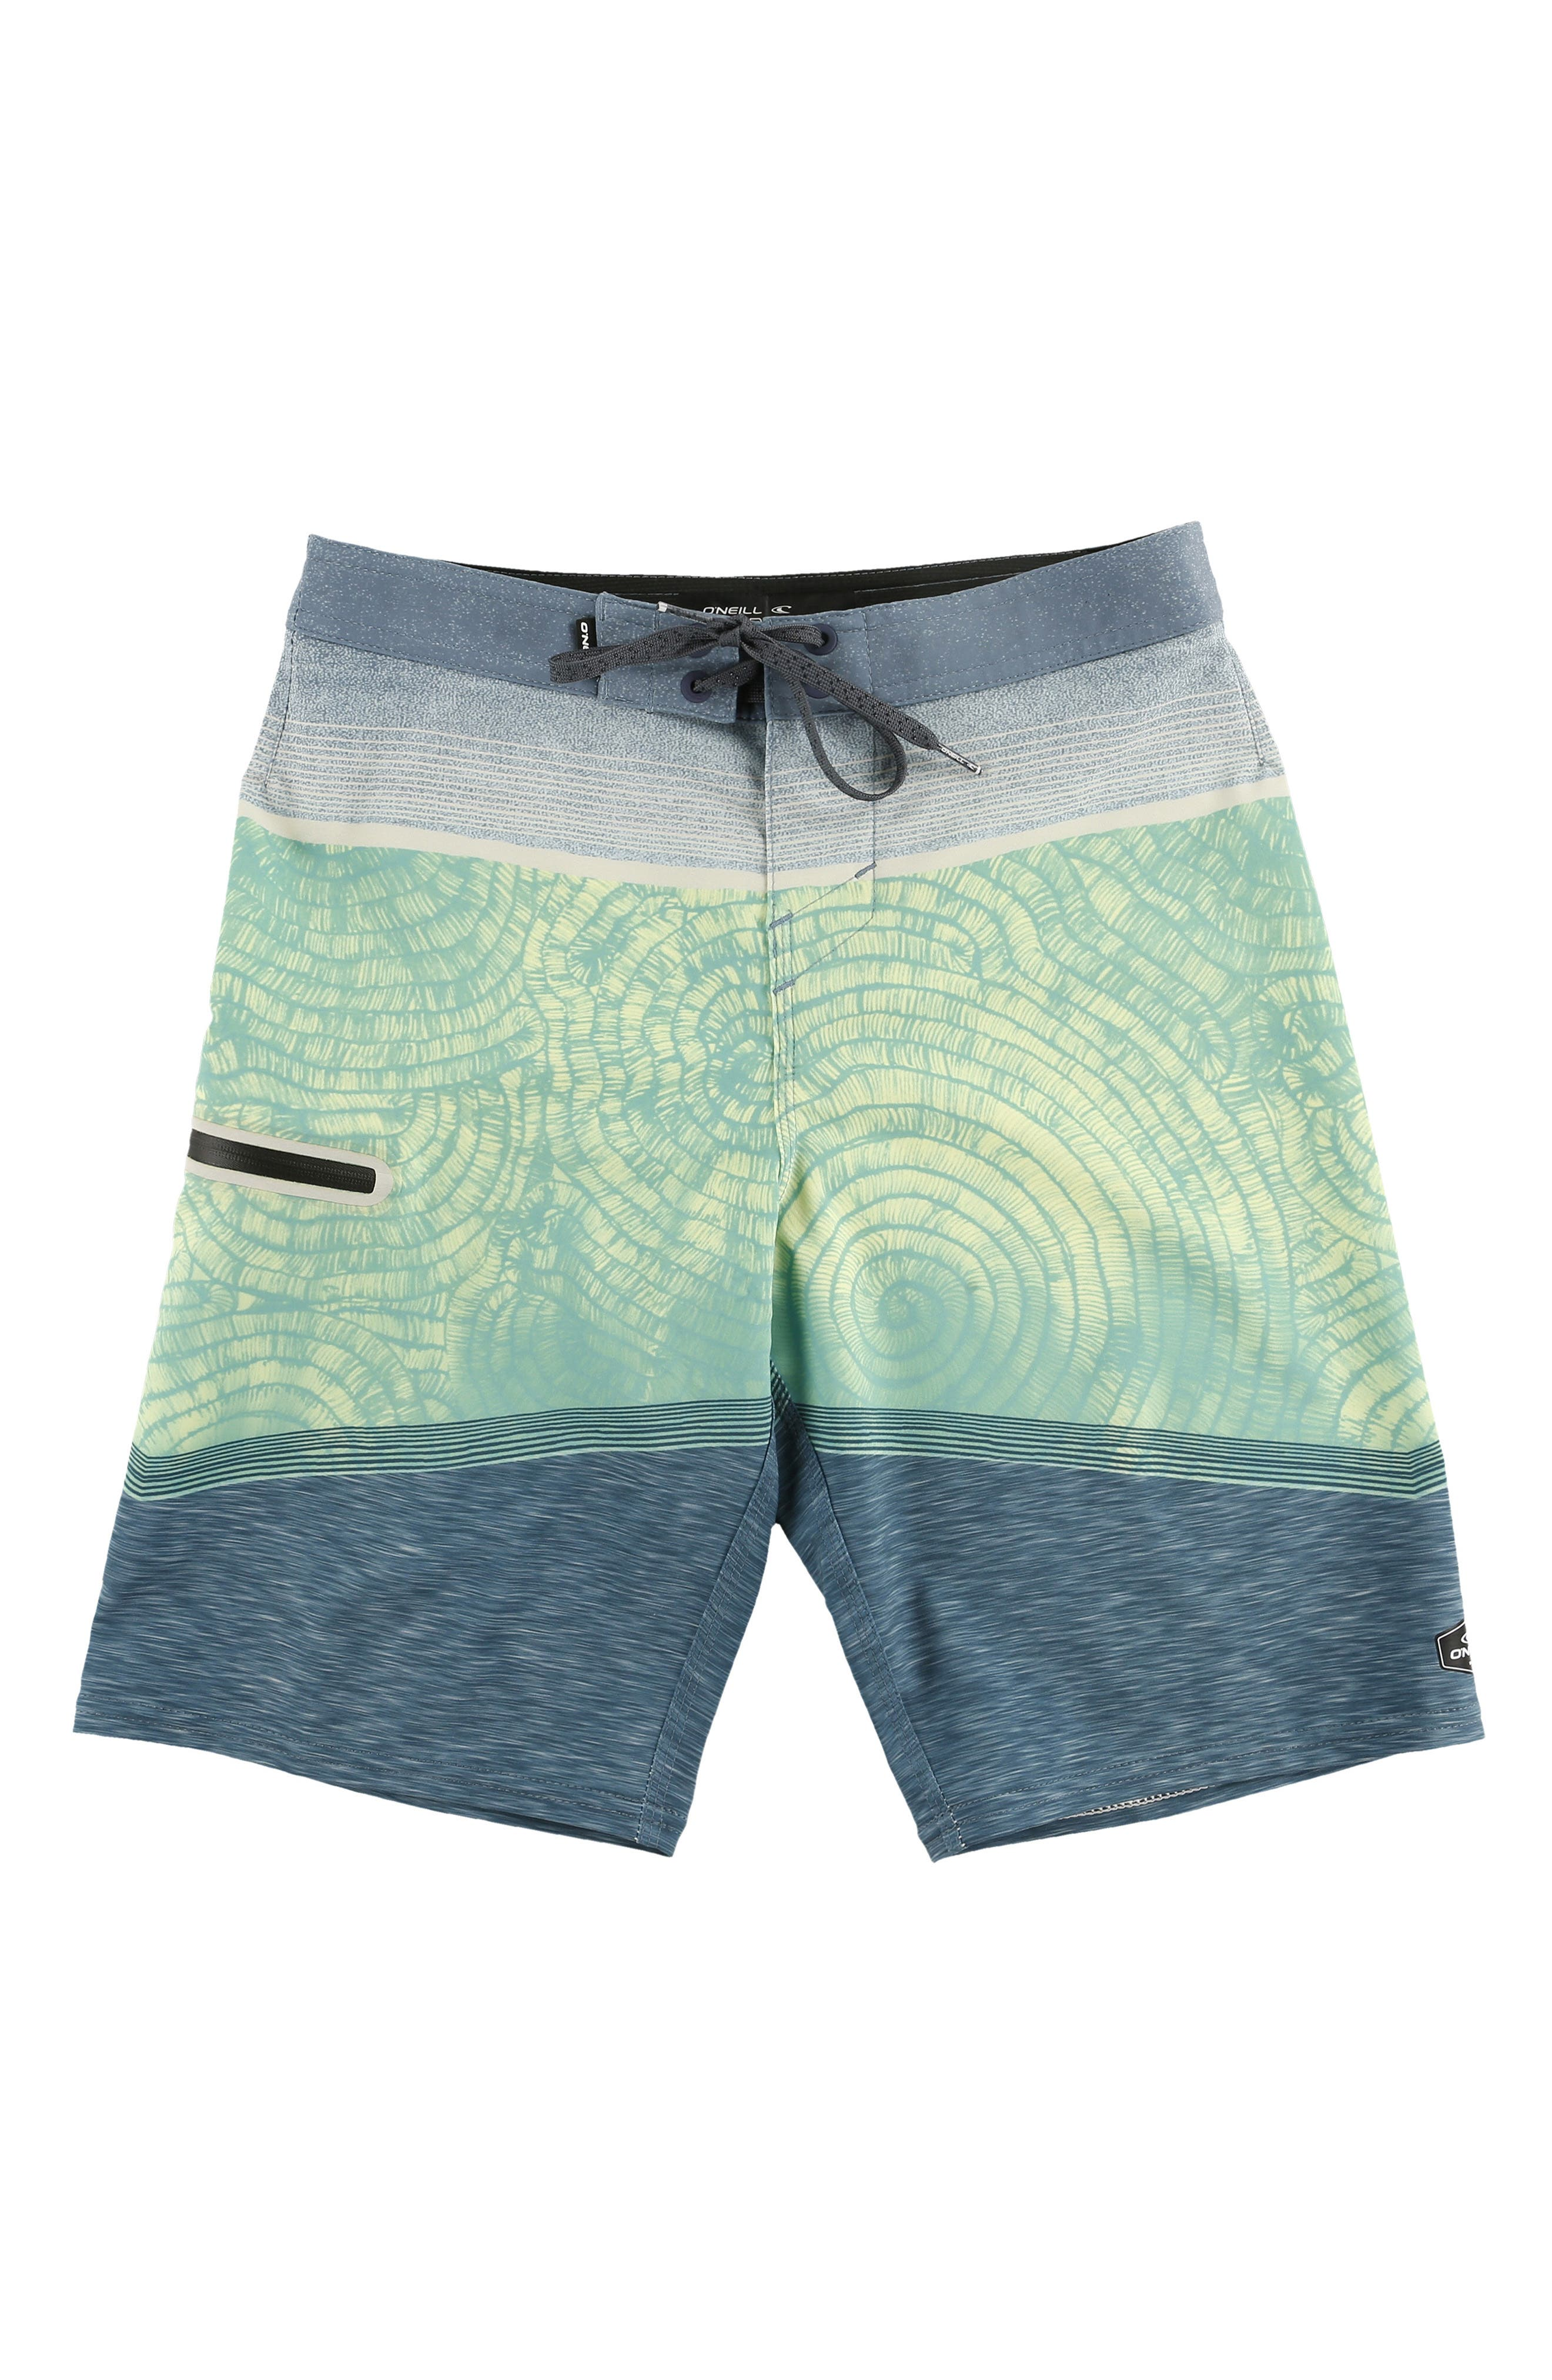 Hyperfreak Board Shorts,                             Main thumbnail 1, color,                             AQUARIUS